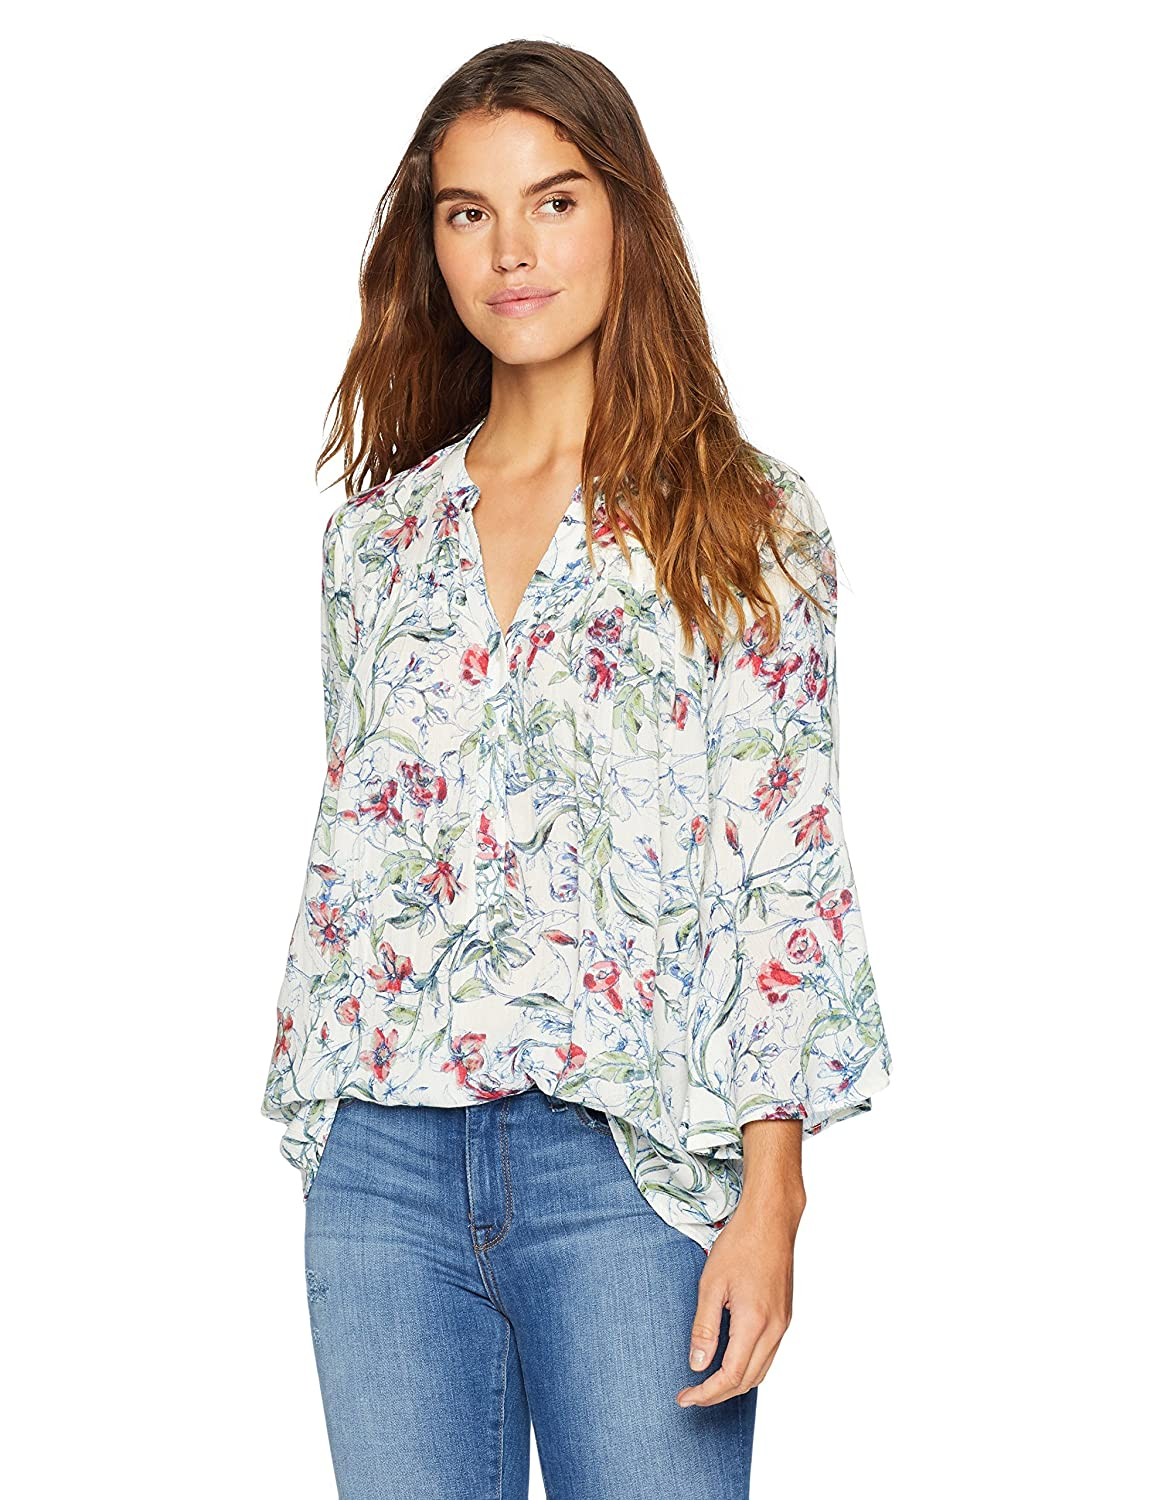 389f08cd09d21 Nine West Women s Marlene Flare Sleeve Blouse  Amazon.co.uk  Clothing